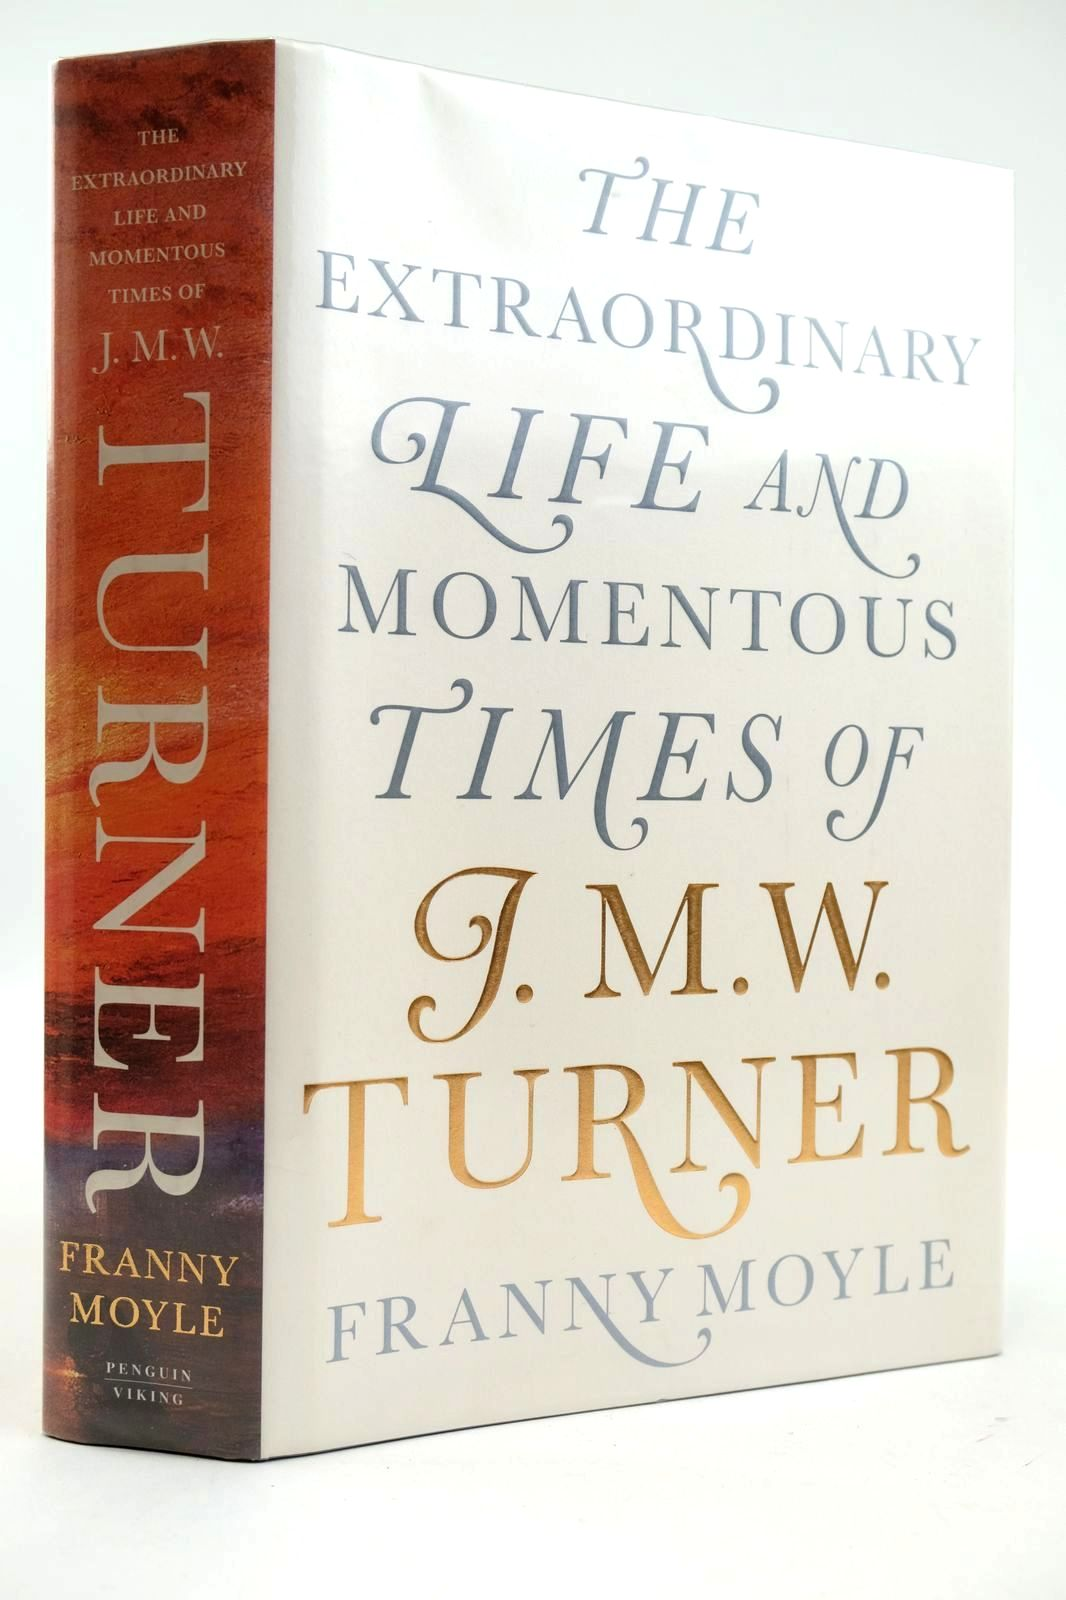 Photo of TURNER THE EXTRAORDINARY AND MOMENTOUS TIMES OF J.M.W. TURNER- Stock Number: 2132689